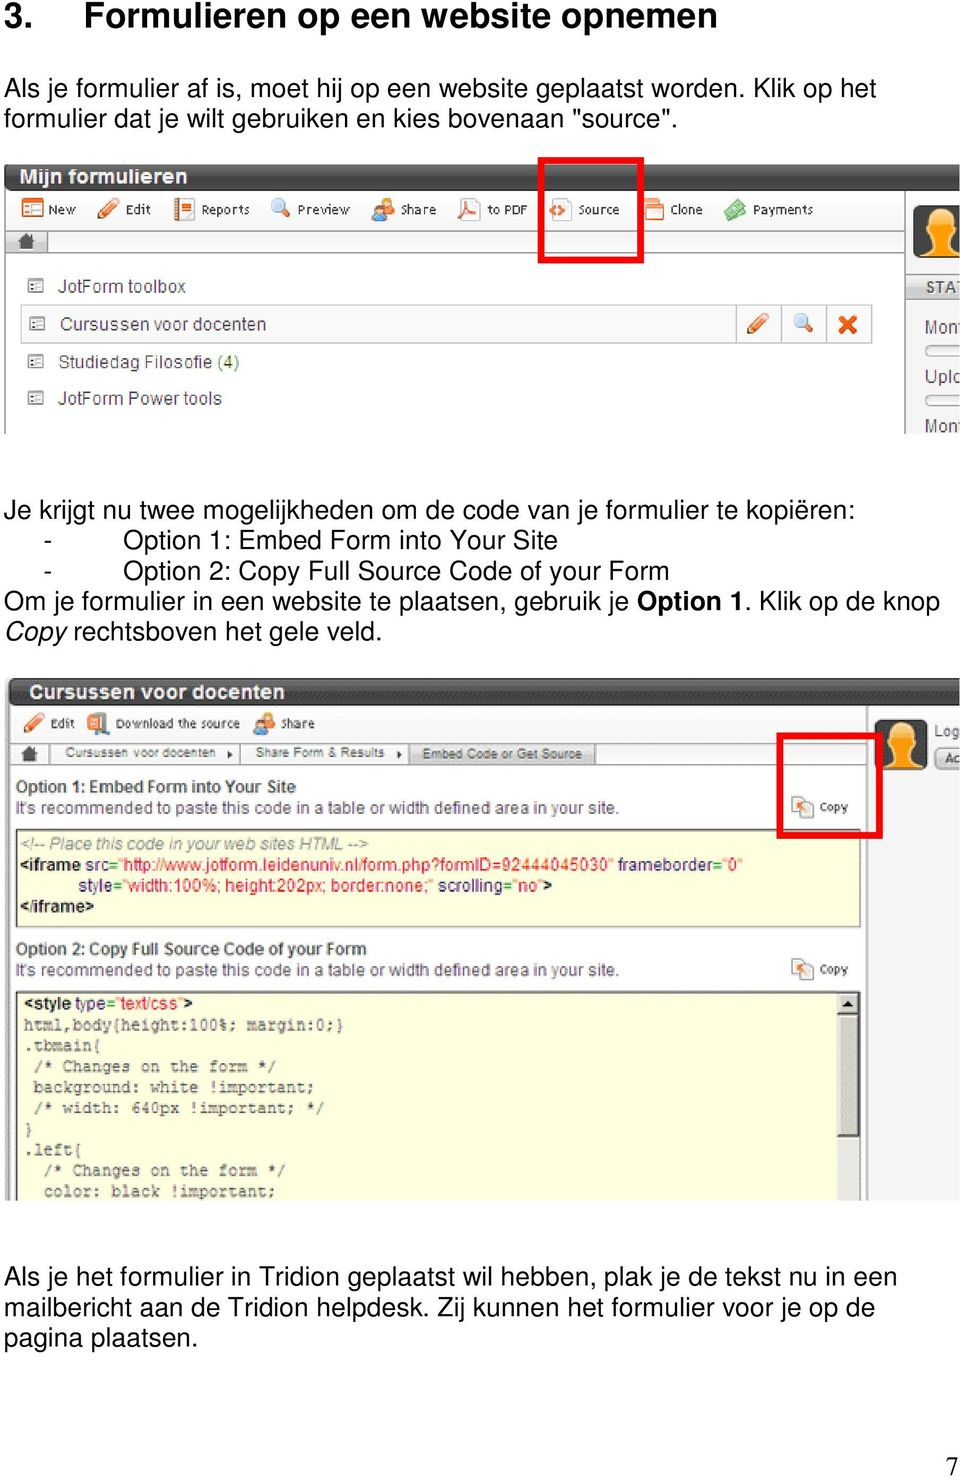 Je krijgt nu twee mogelijkheden om de code van je formulier te kopiëren: - Option 1: Embed Form into Your Site - Option 2: Copy Full Source Code of your